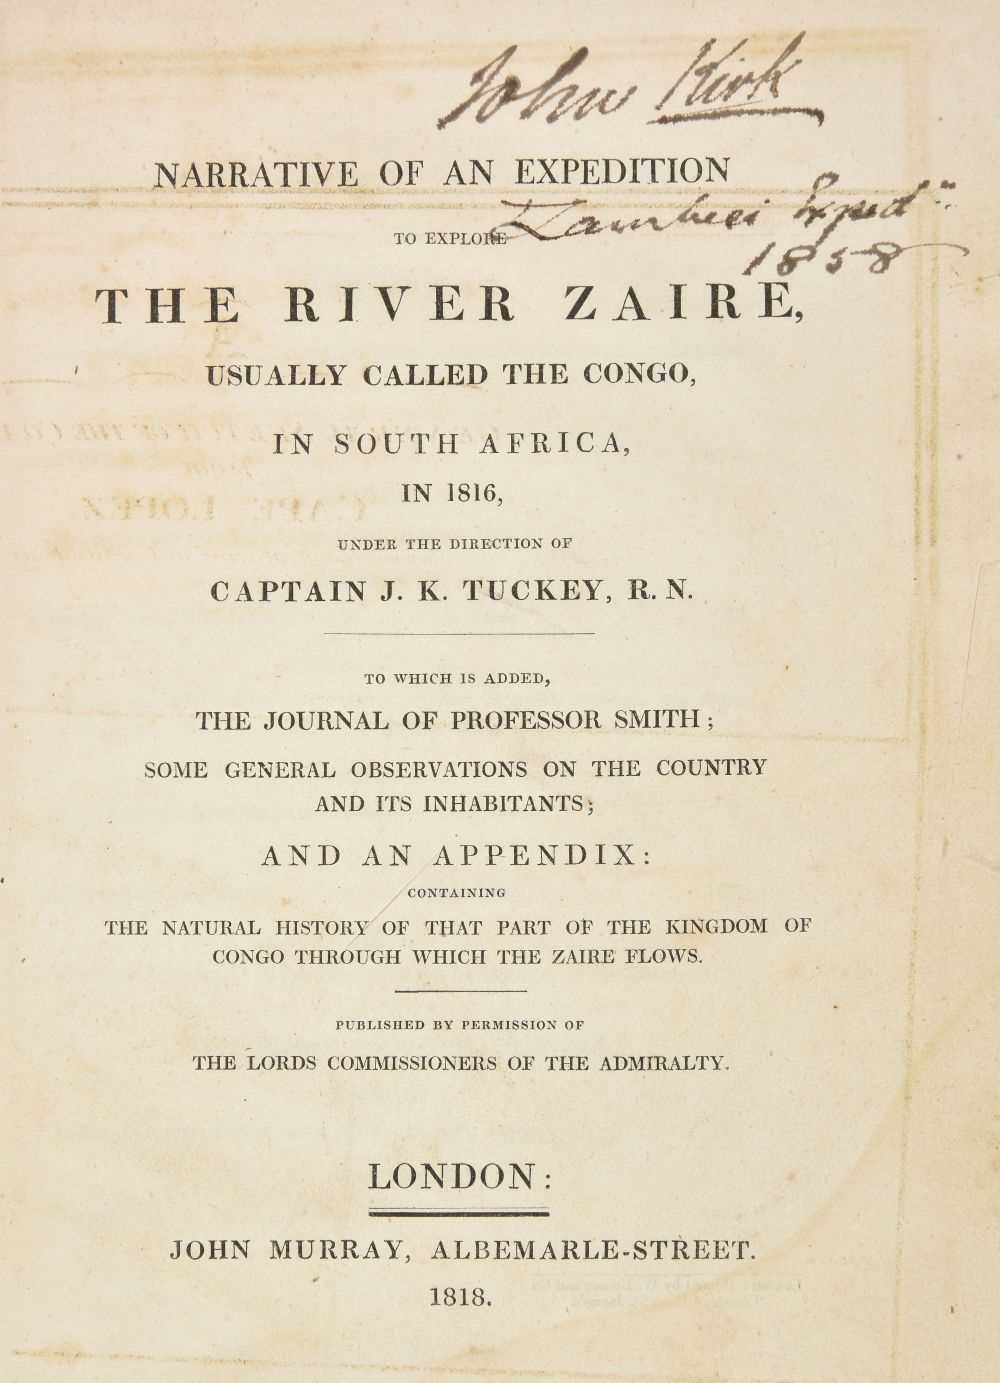 Lot 34-Tuckey (James Kingston). Expedition to the River Zaire, 1st edition 1818, association copy